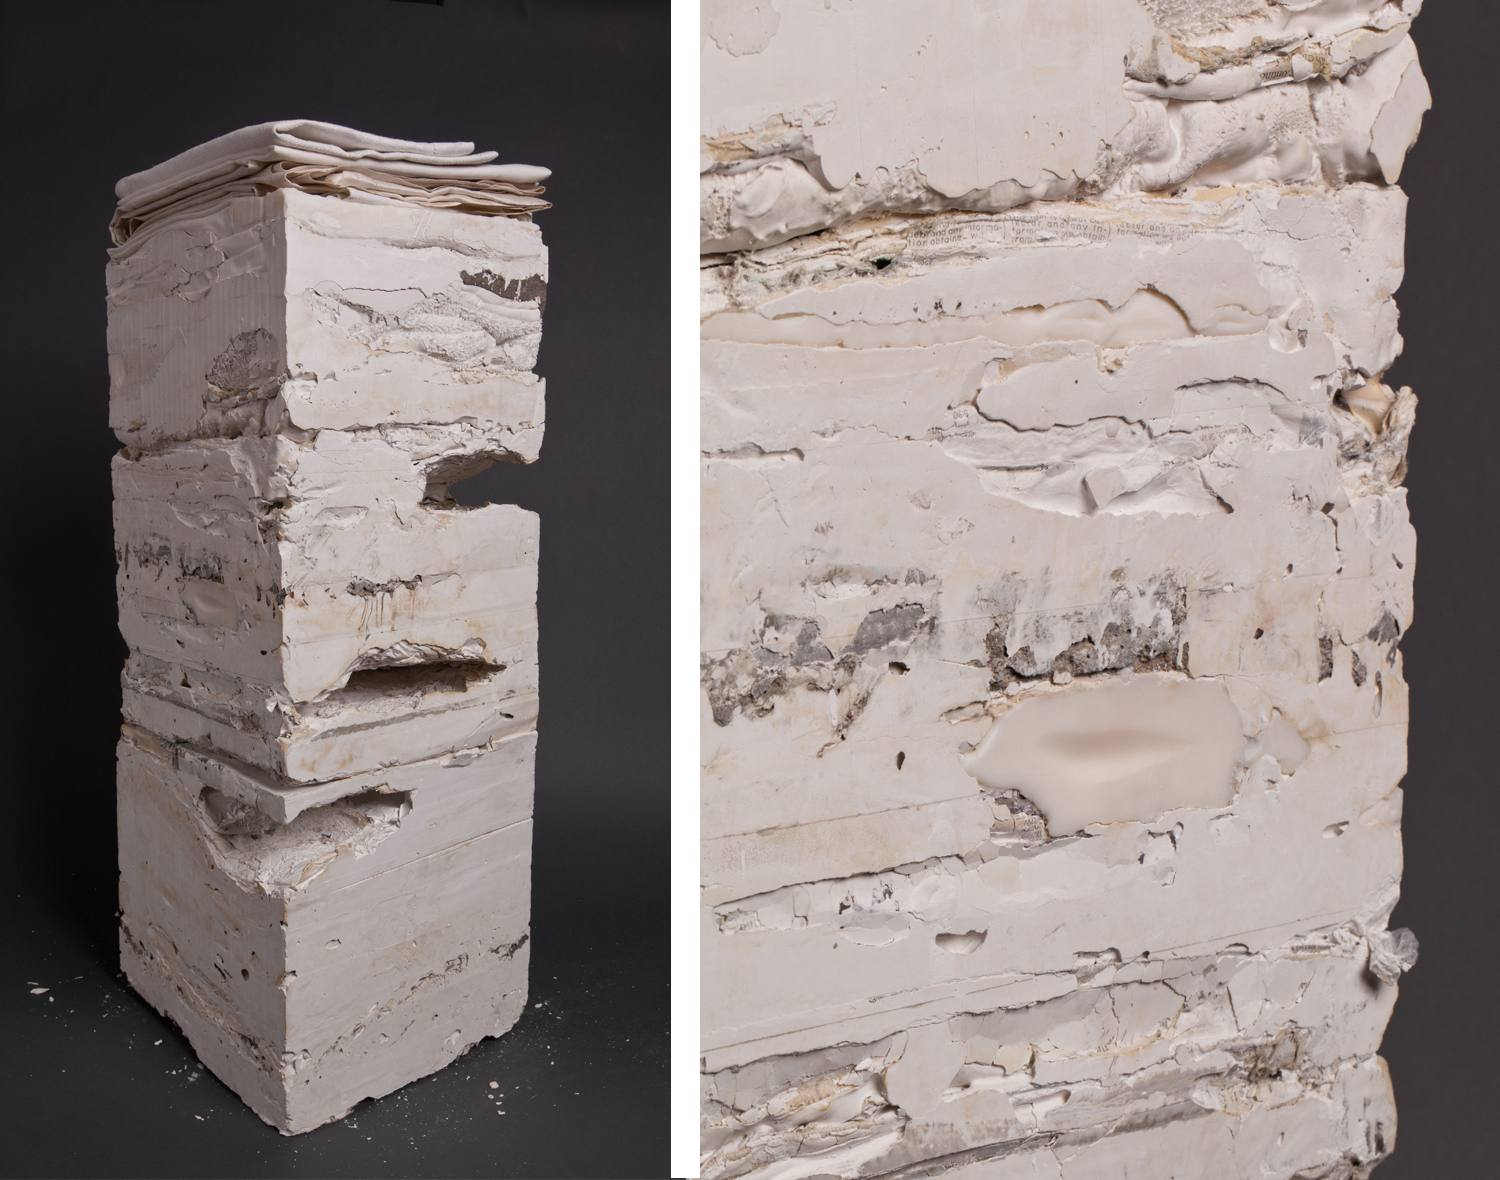 Sublimation  | 2012 | plaster & domestic debris | 30 x 10 x 10 |  photo: Jess Dewes